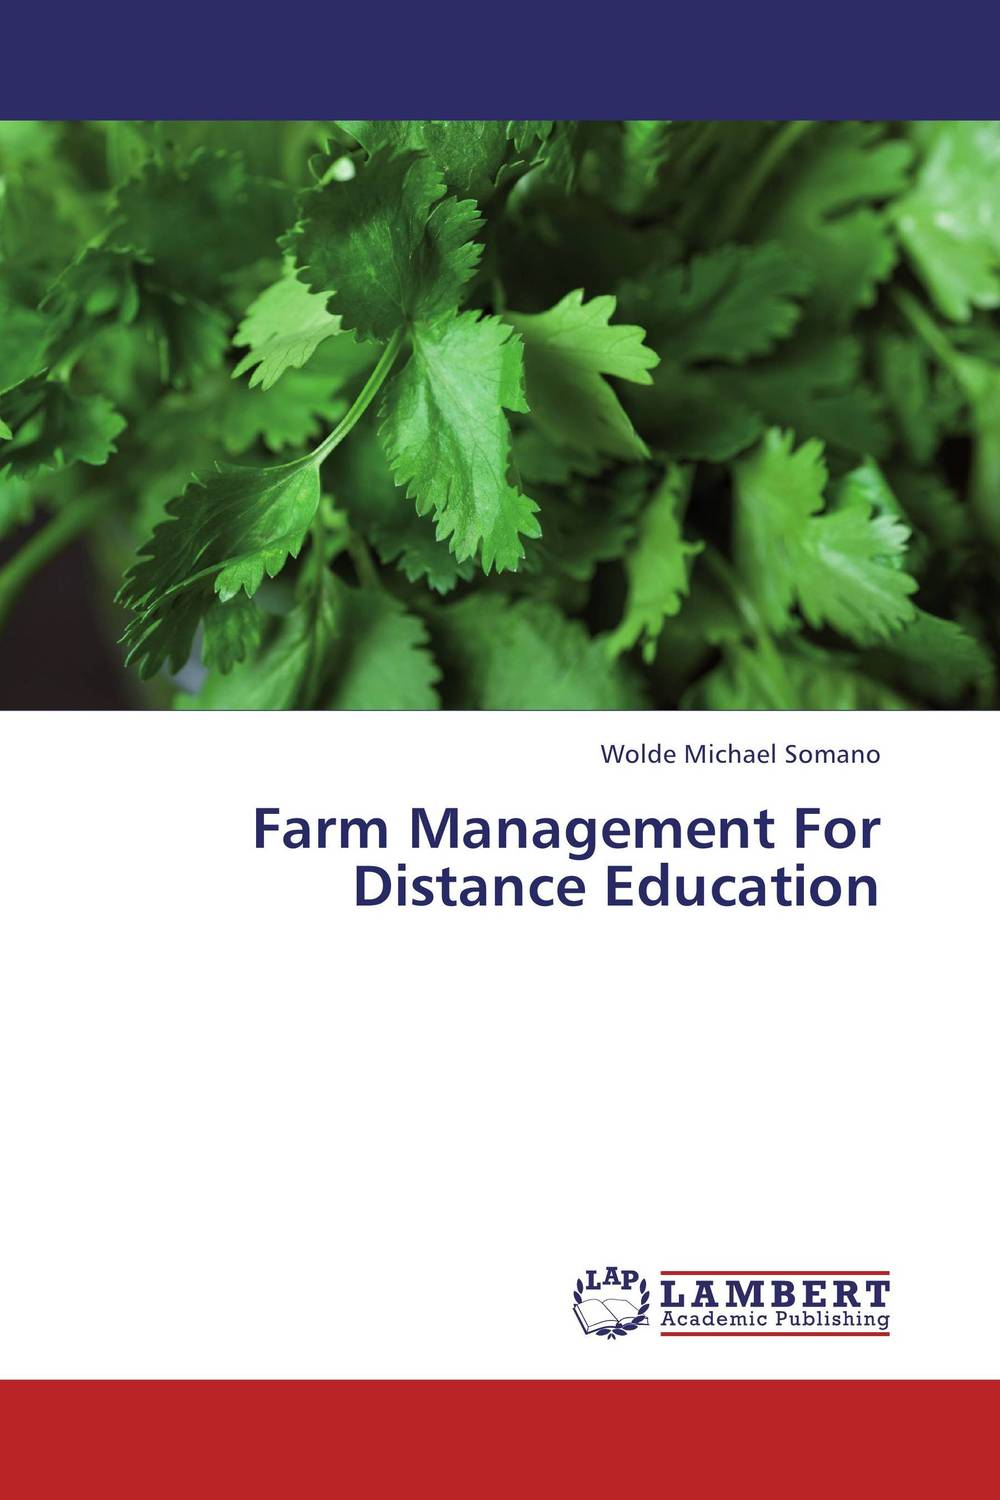 Farm Management For Distance Education stephen denning the leader s guide to radical management reinventing the workplace for the 21st century